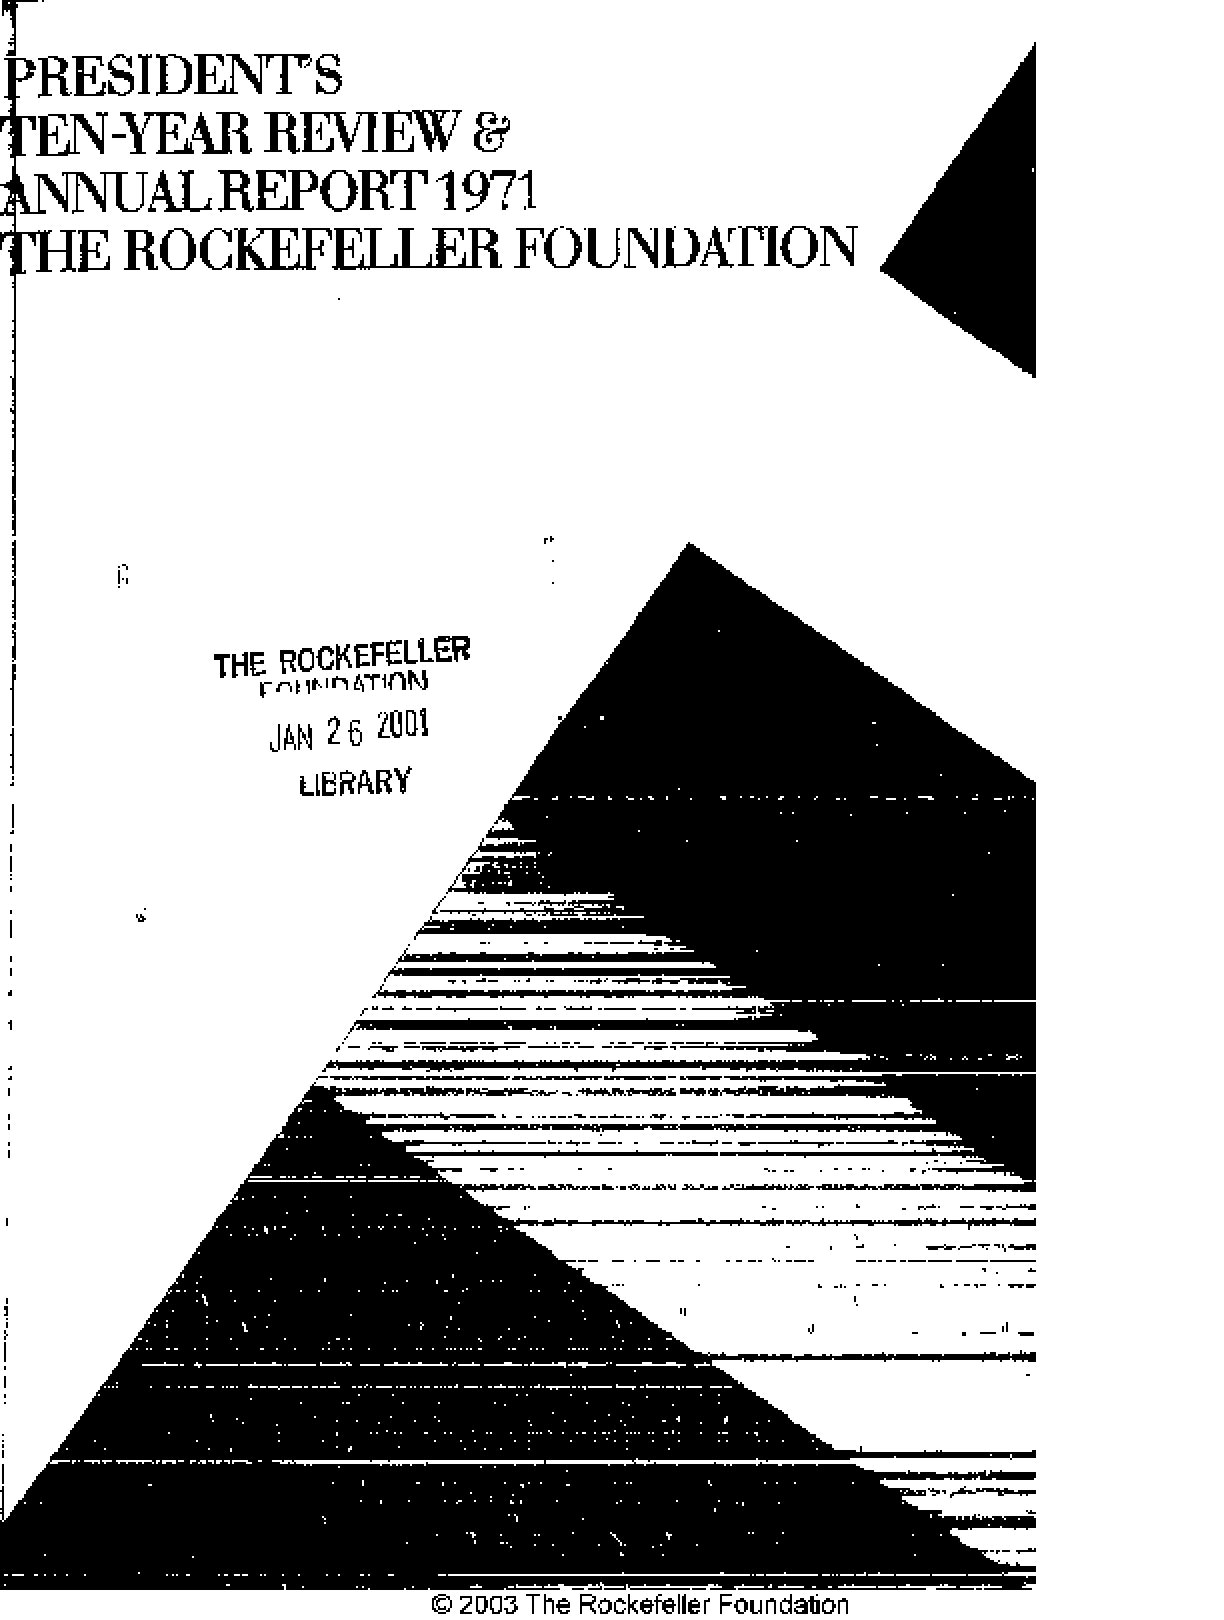 Rockefeller Foundation - 1971 Annual Report